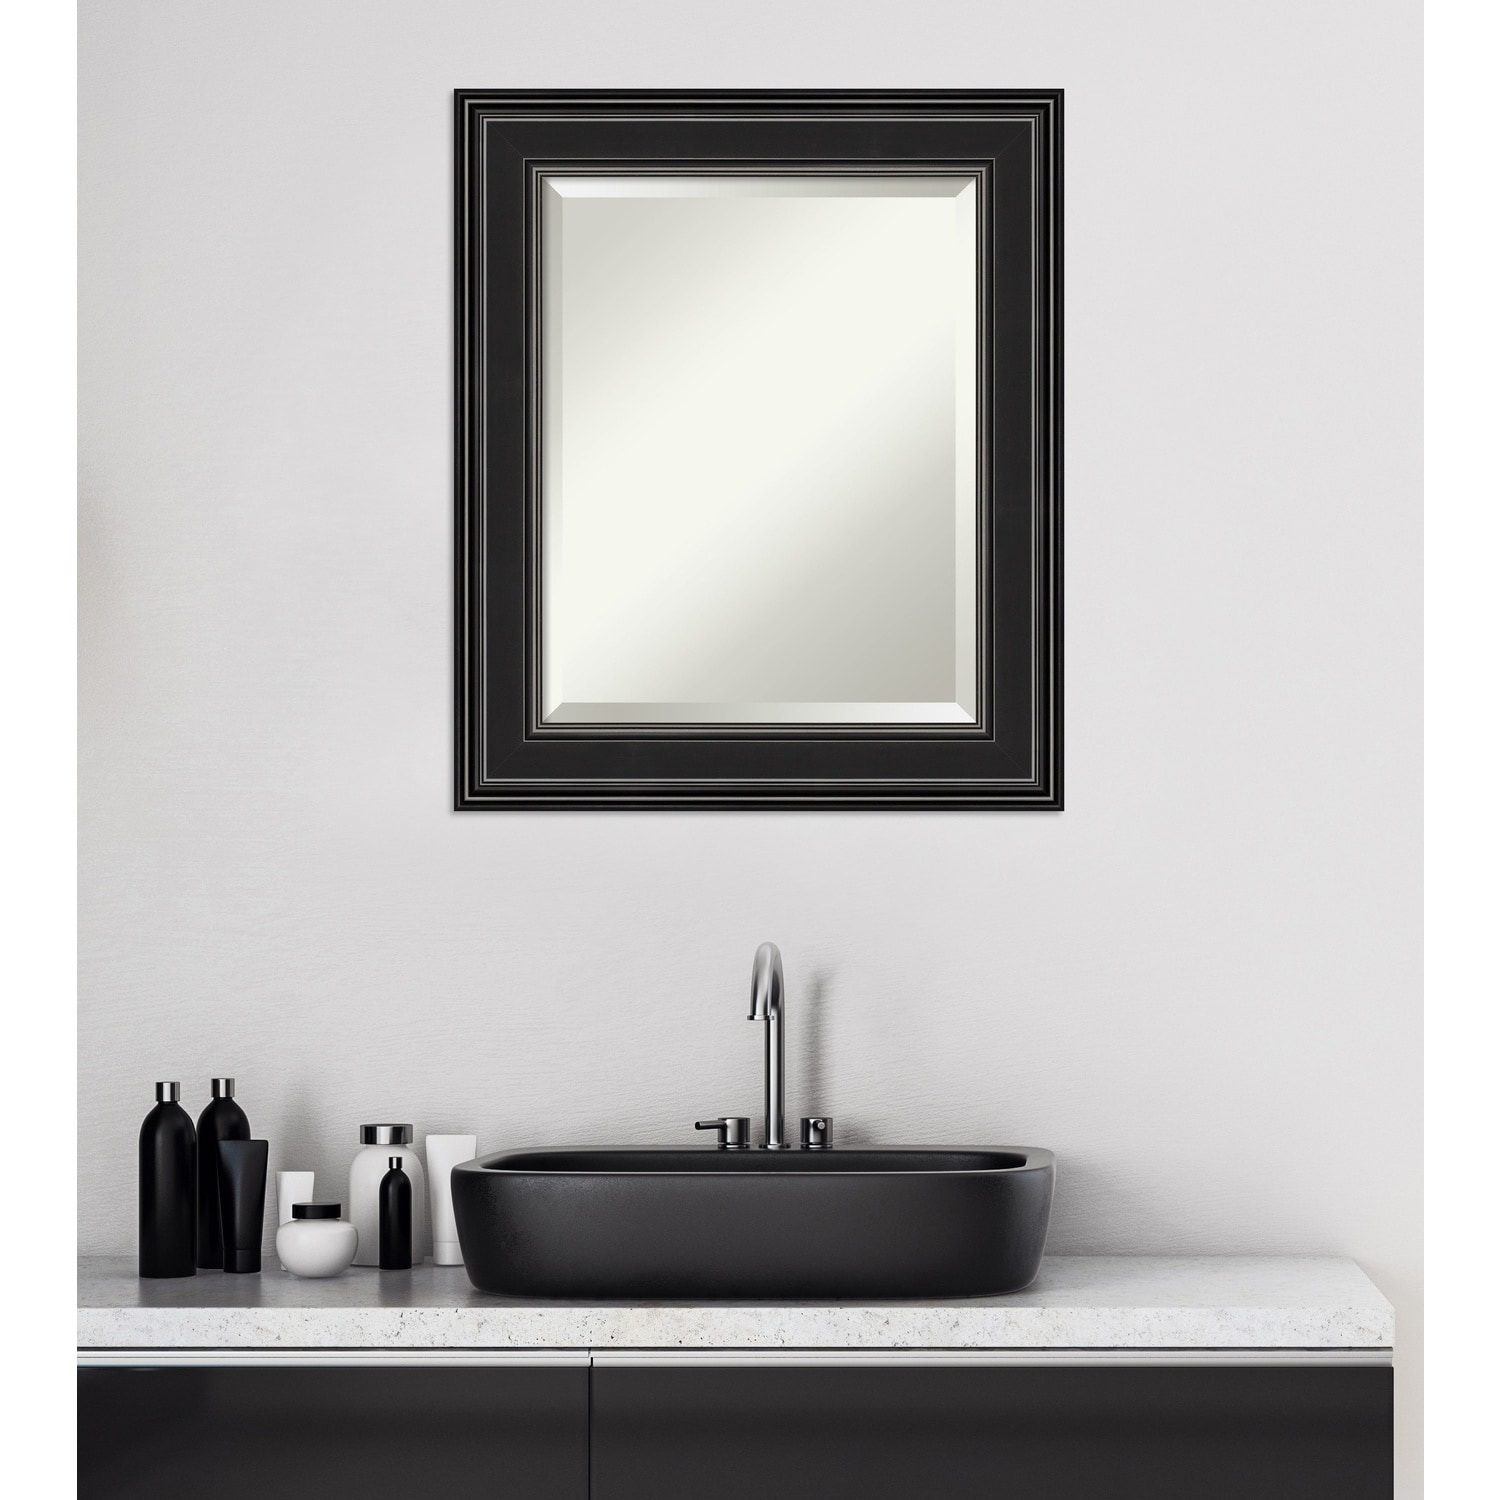 Copper Grove Morsang Bathroom Vanity Wall Mirror With Black Frame